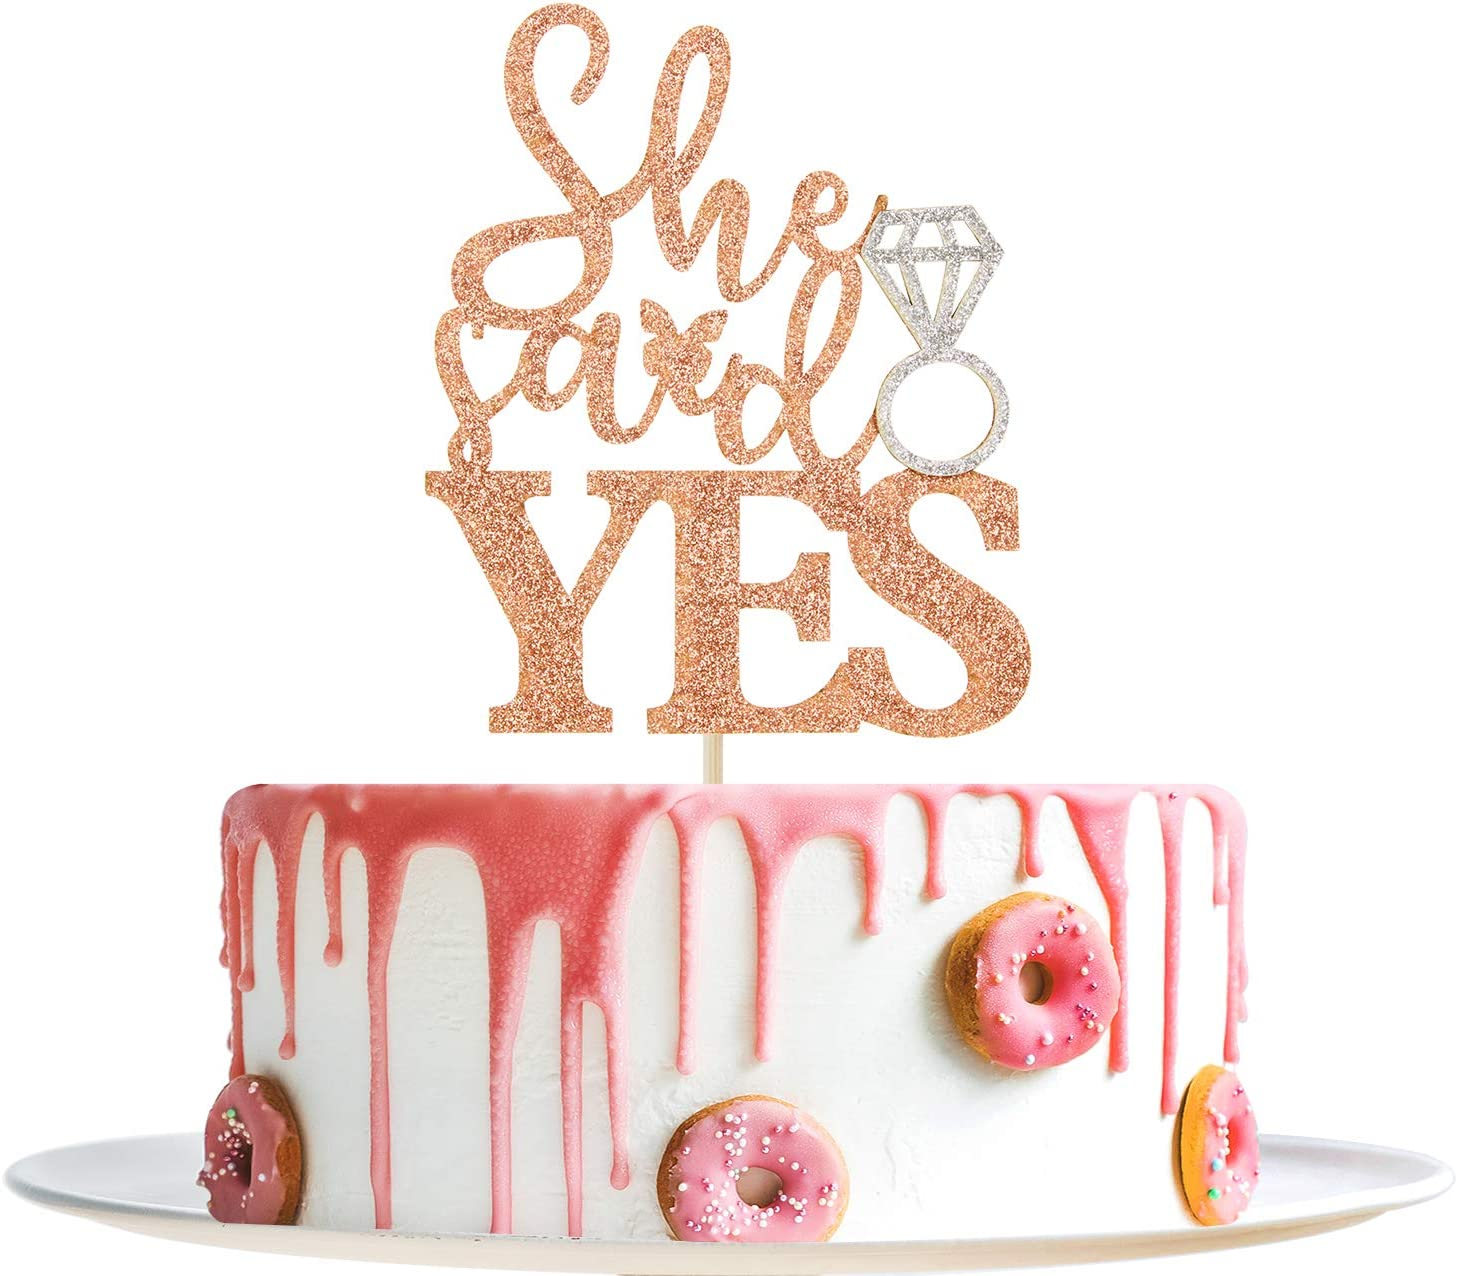 Rose Gold Glitter She Said Yes Cake Topper With Ring - Bridal Shower/Engagement/Wedding/Anniversary Party Decorations Supplies